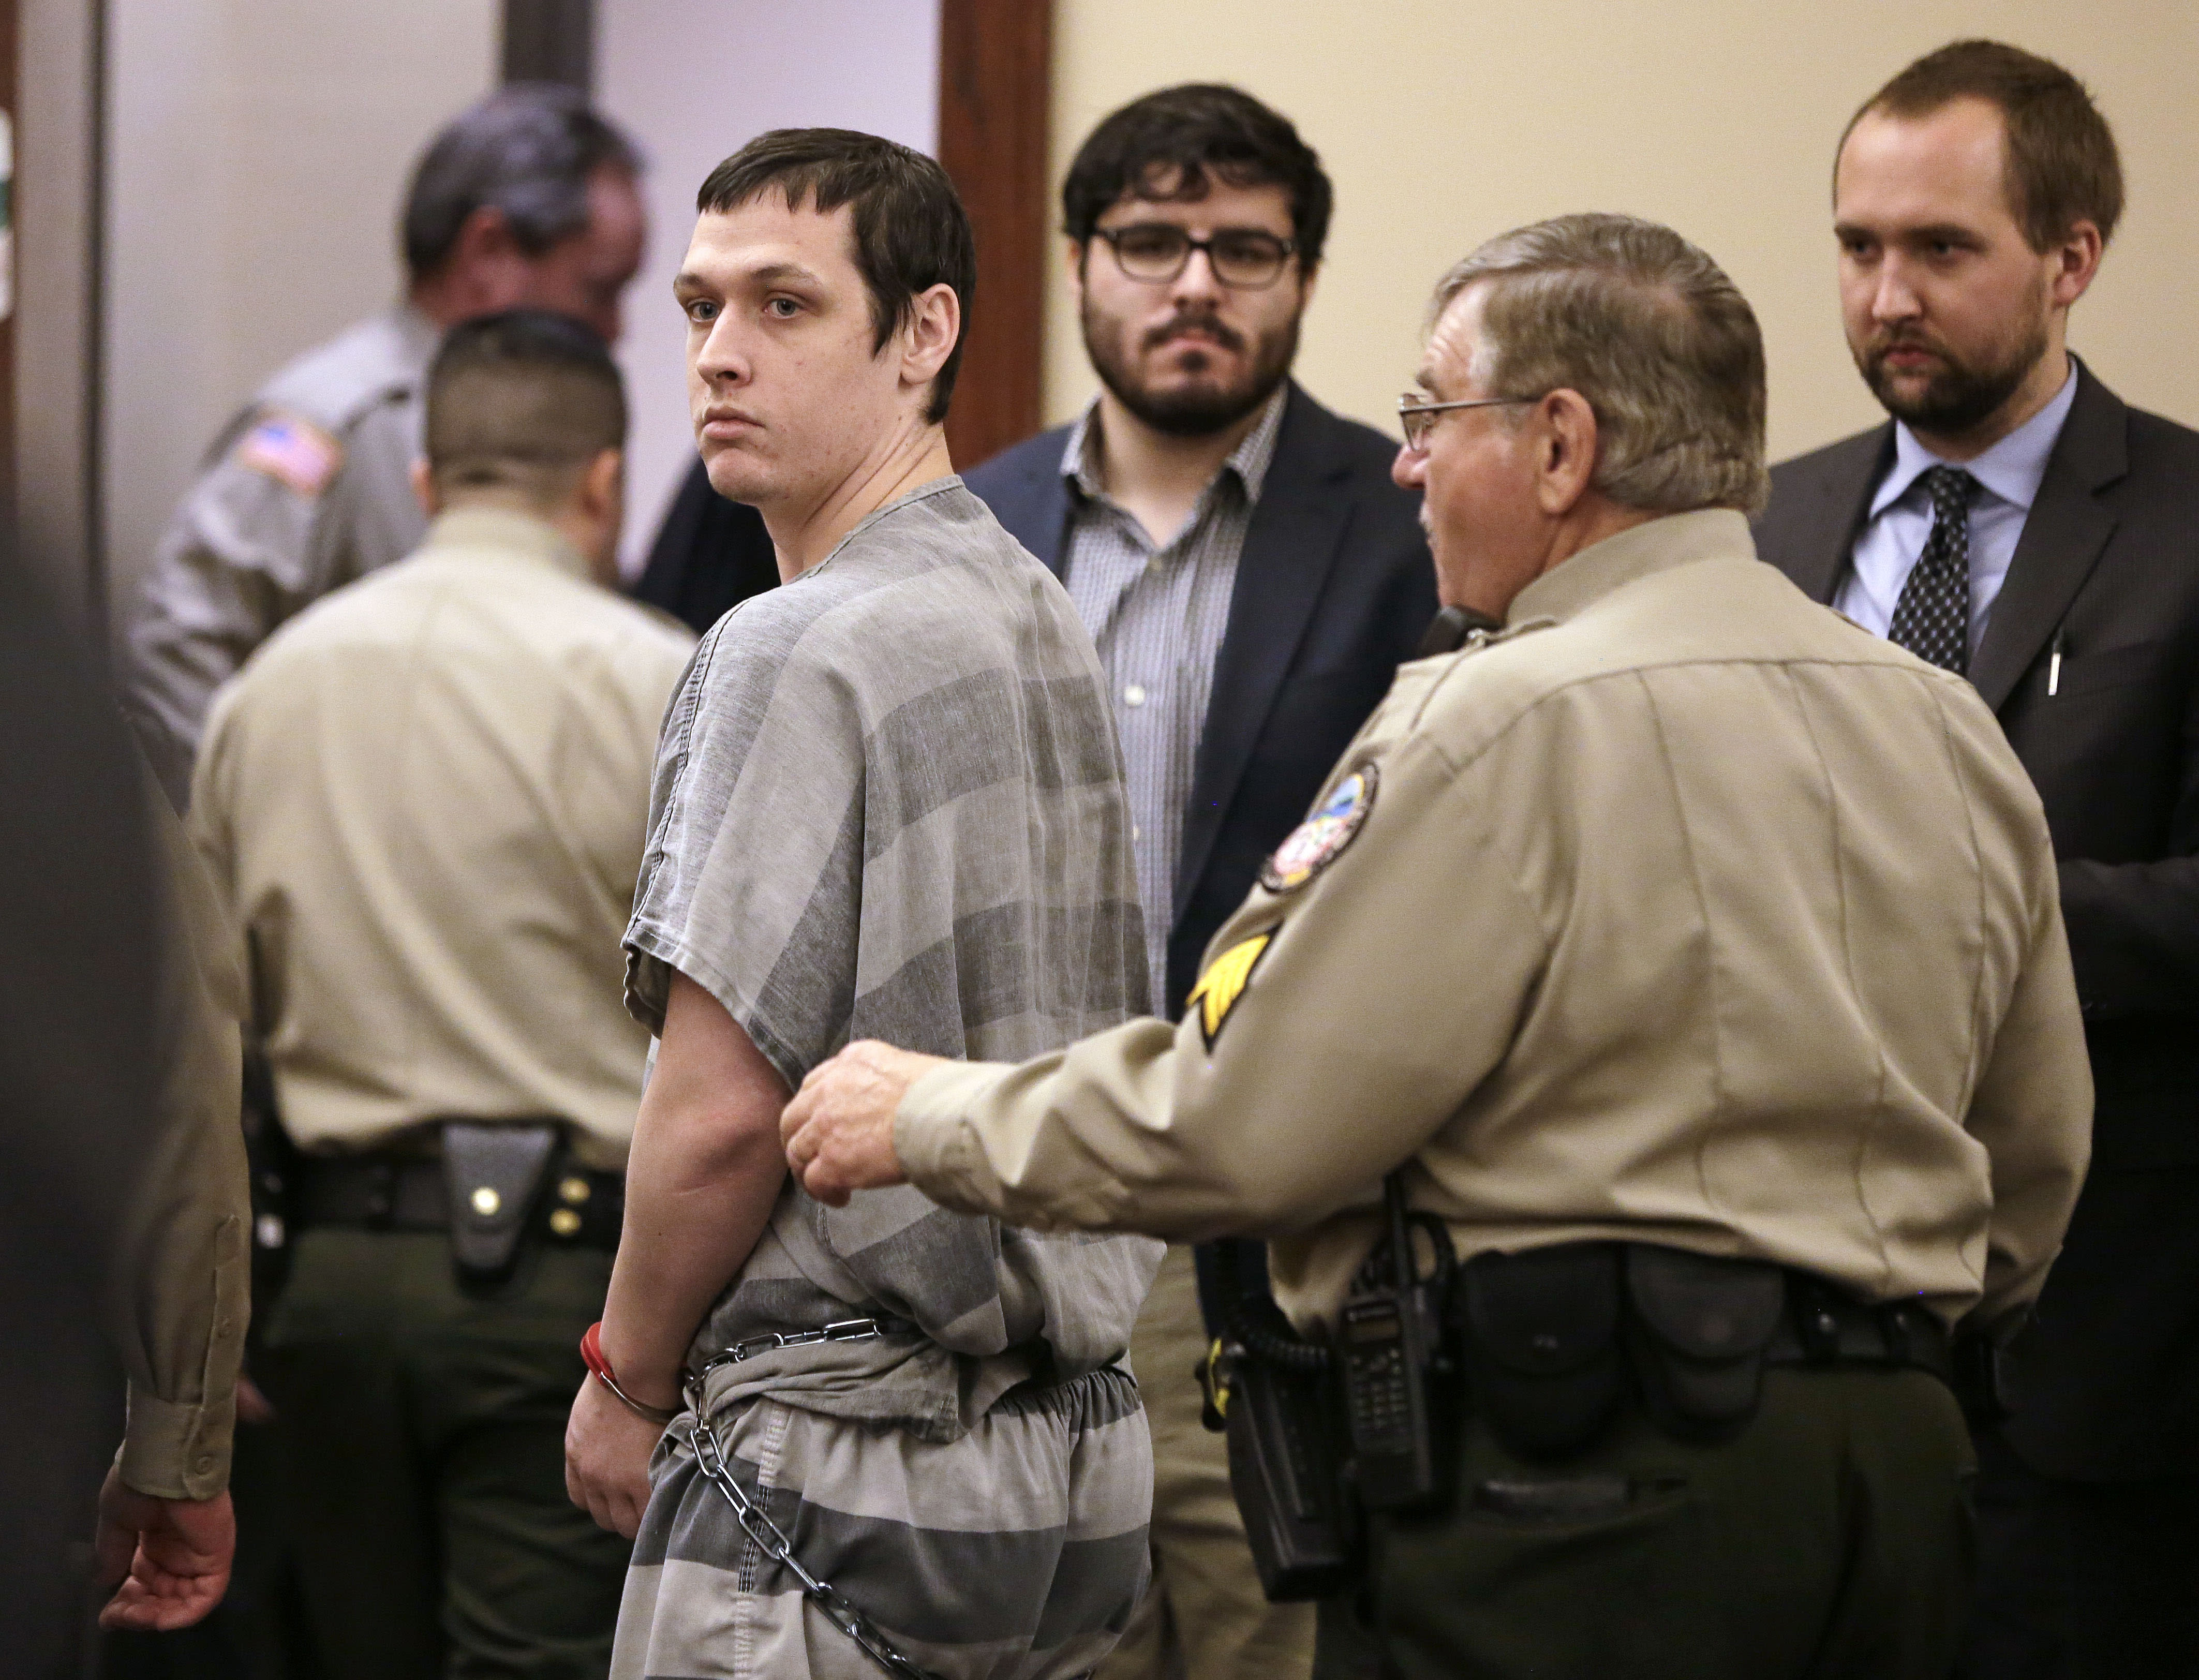 State agency: Analysis of evidence in Bobo case finished